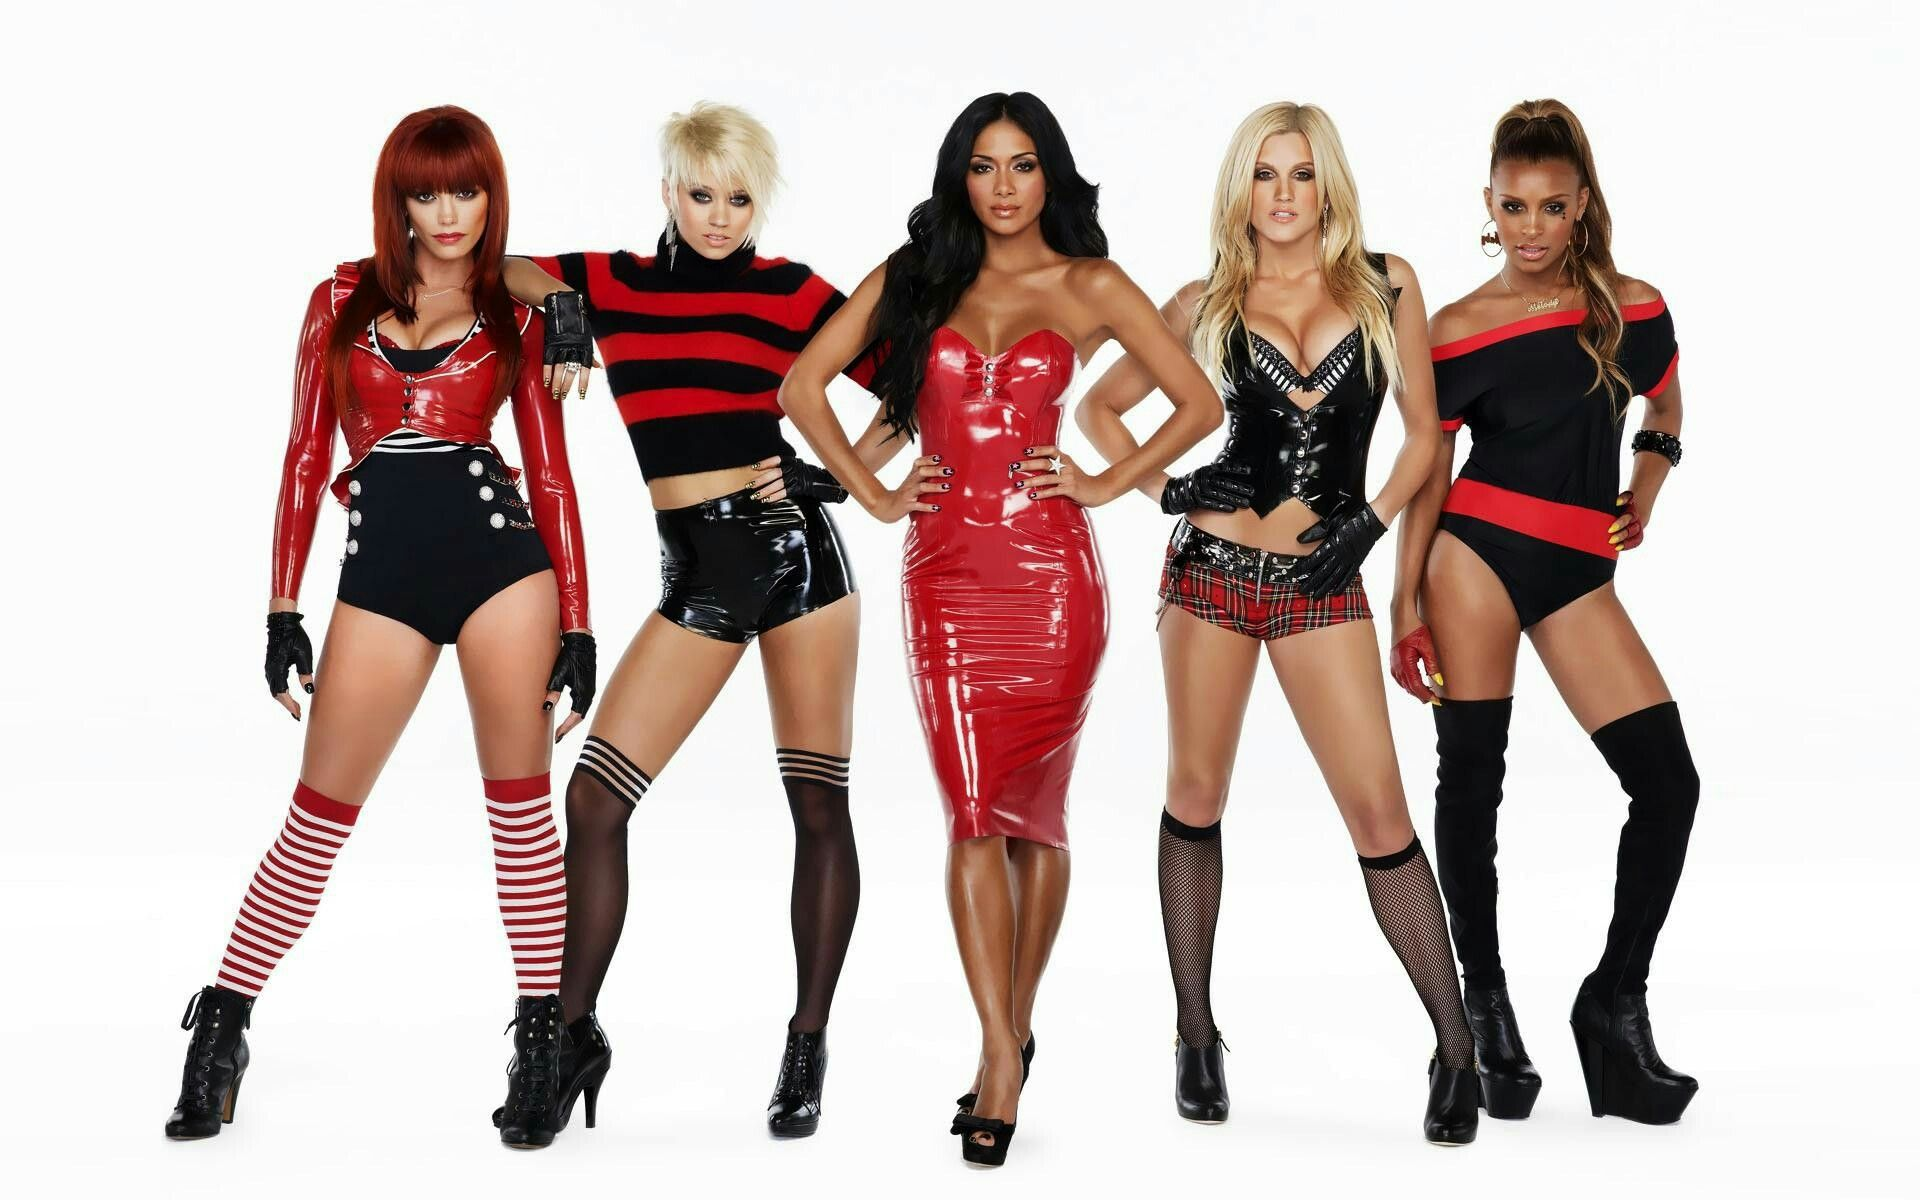 The Pussycat Dolls in latex